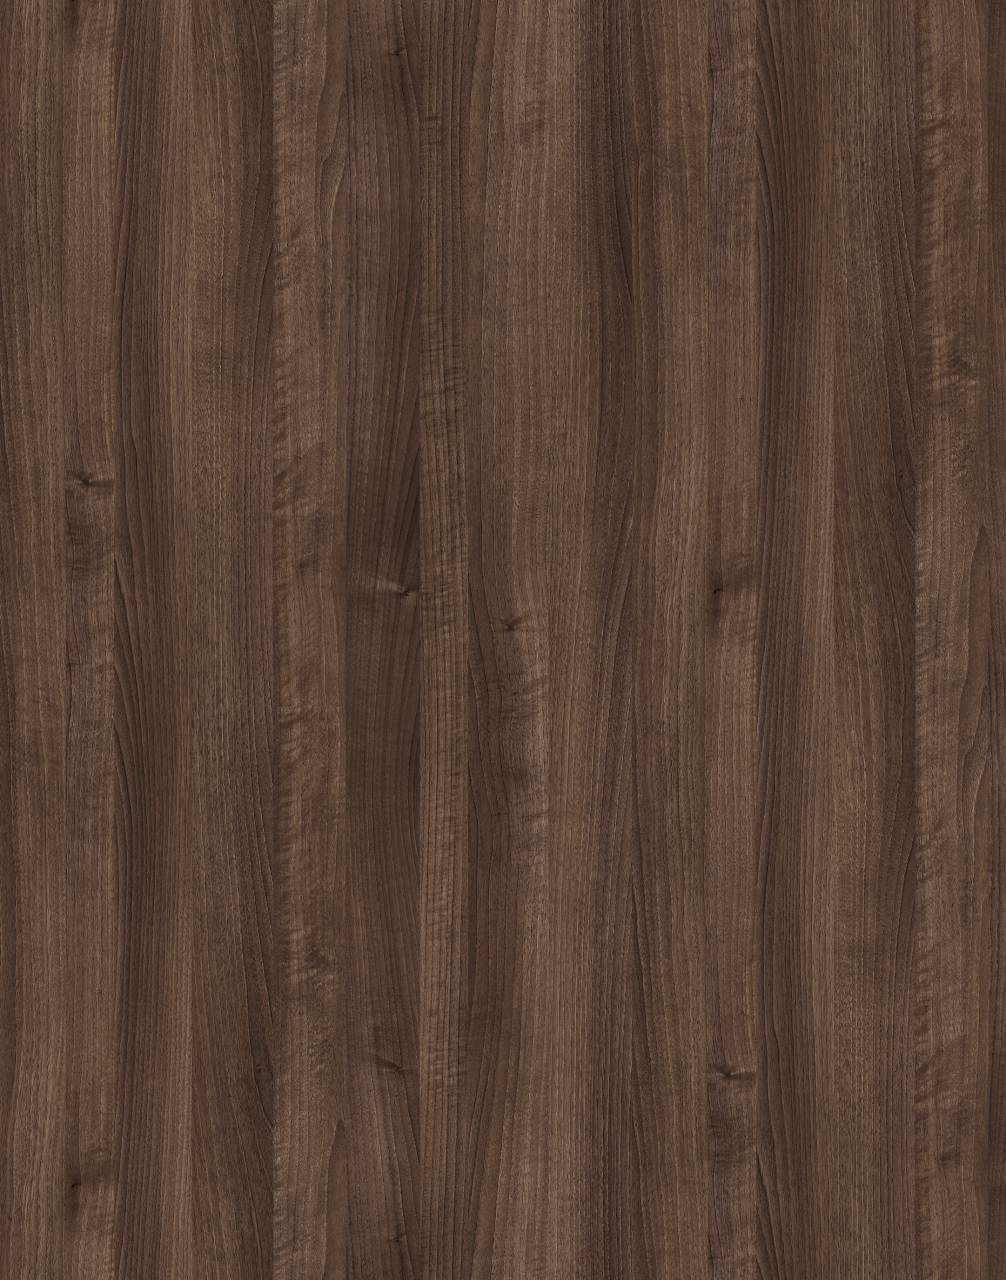 0481 Opera Walnut (MF PB sample)